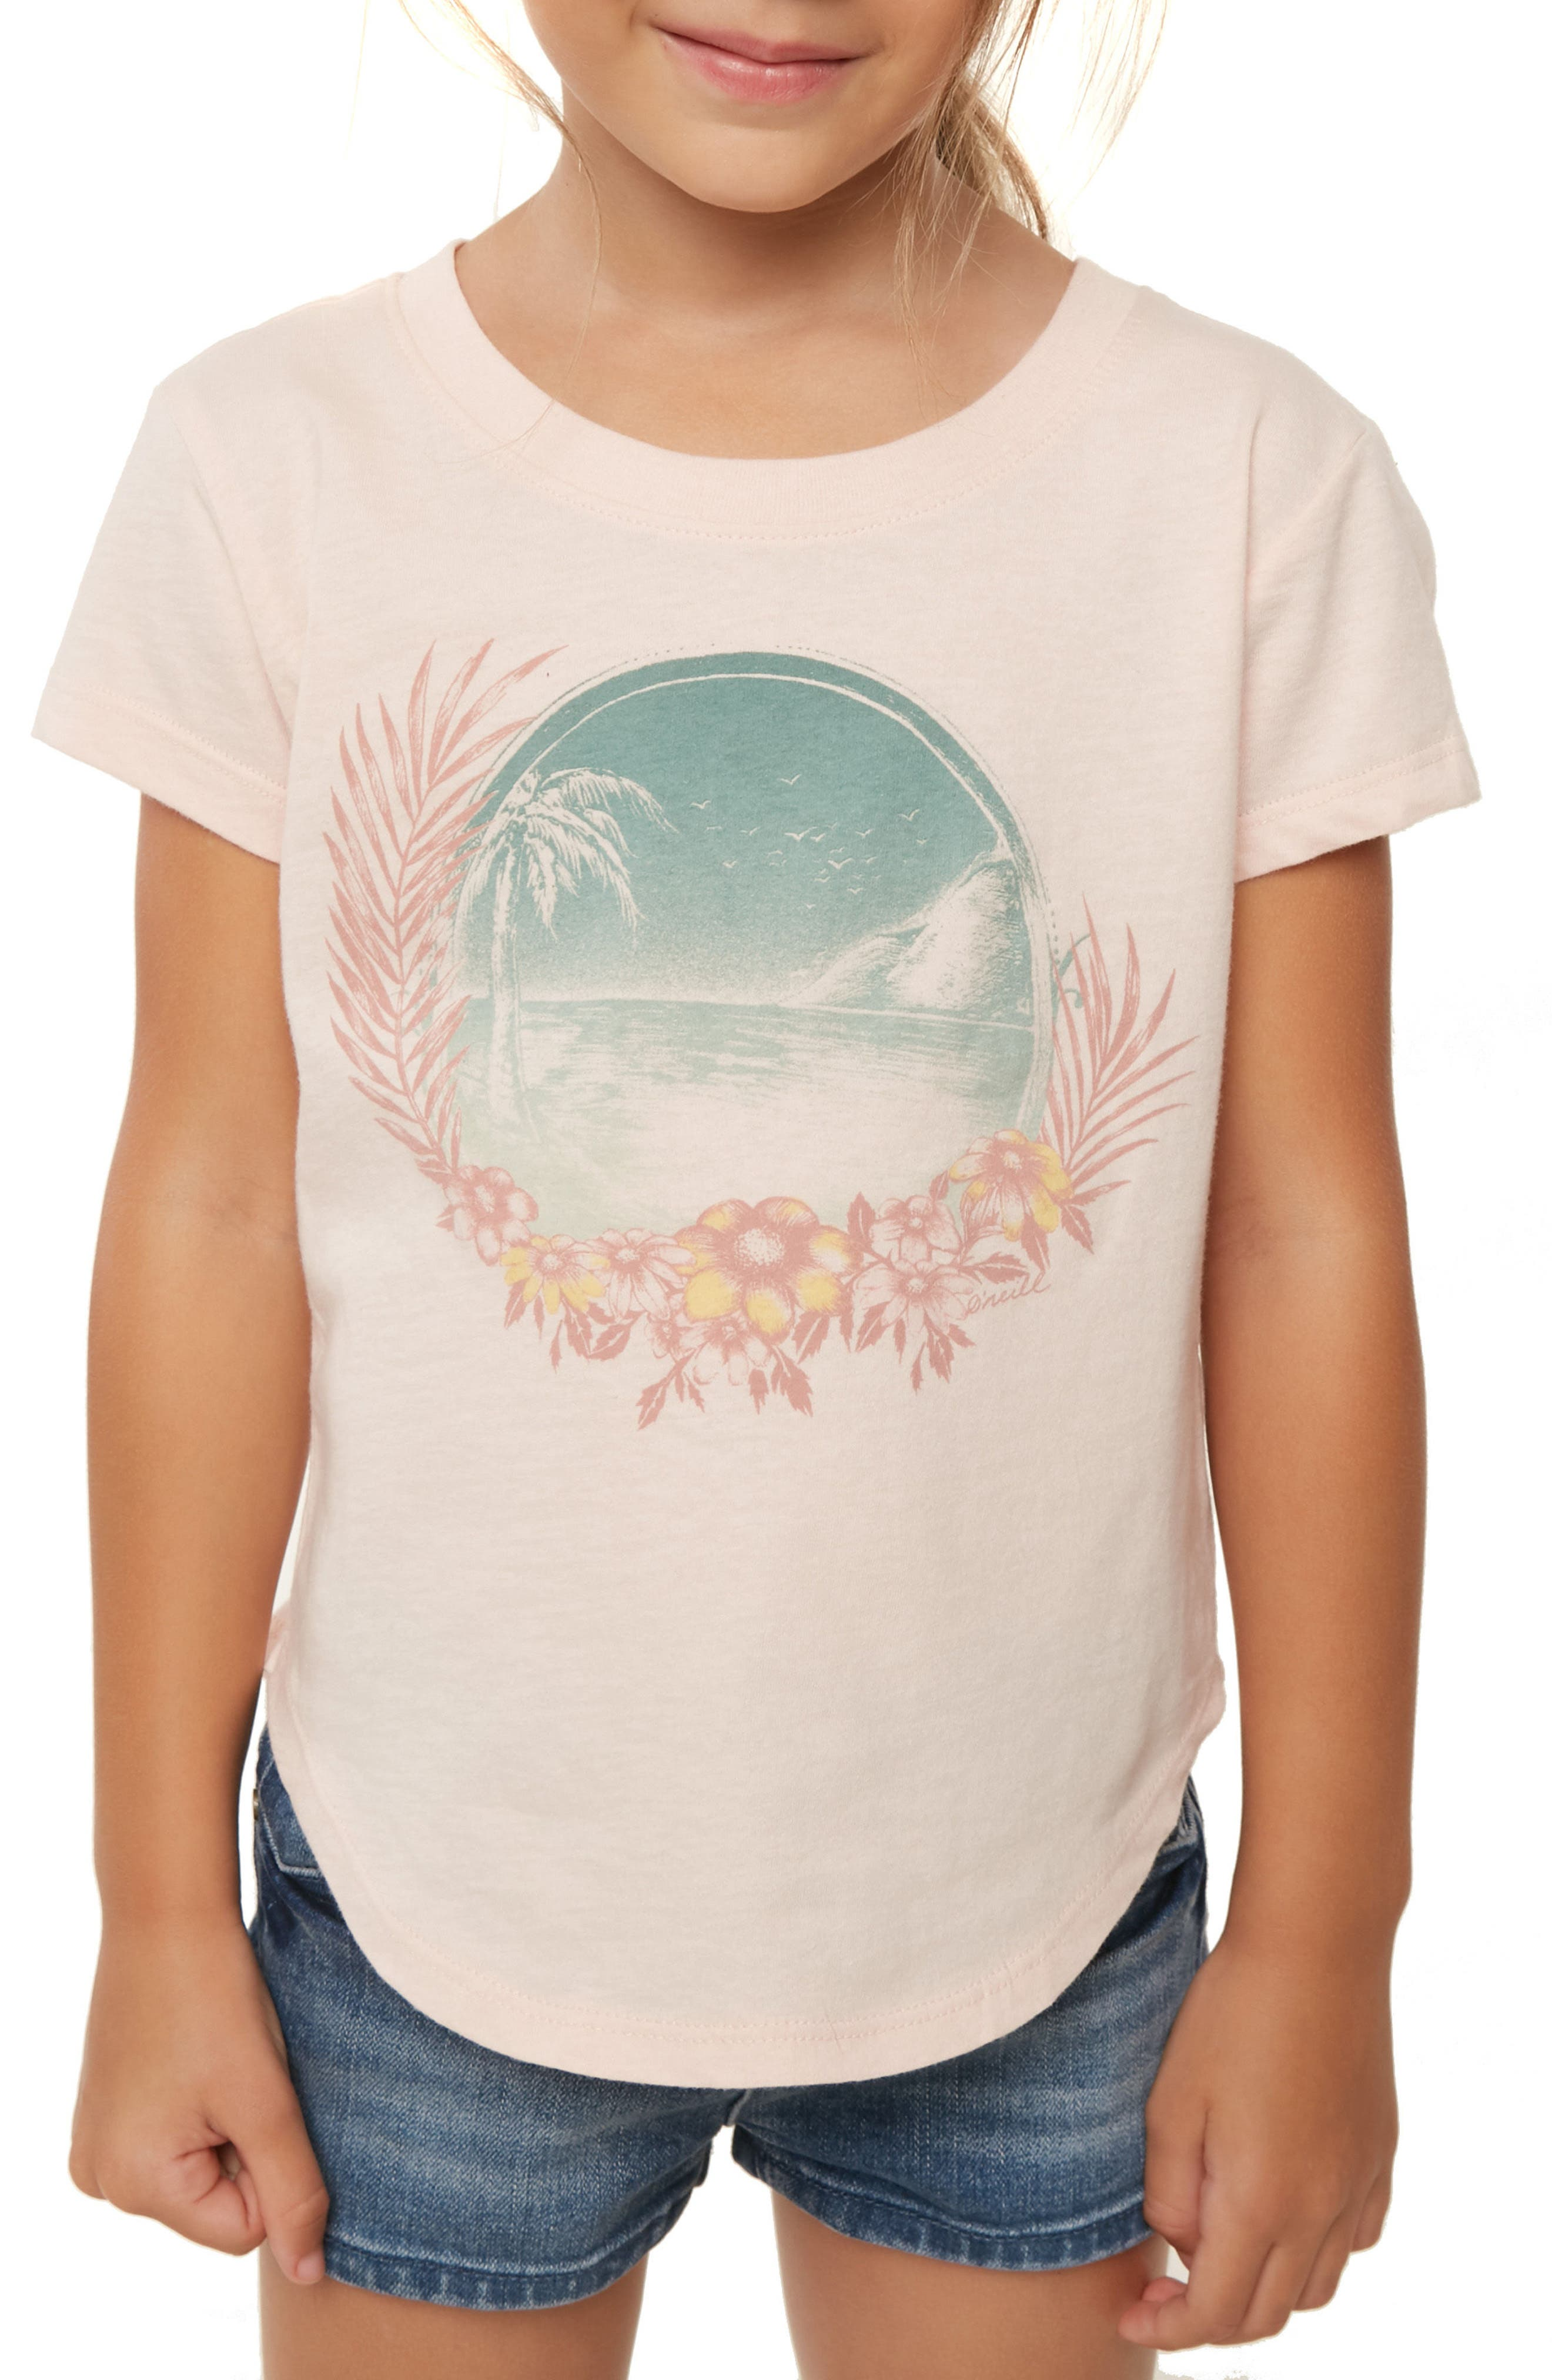 Summertime Graphic Tee,                             Alternate thumbnail 3, color,                             CAMEO ROSE